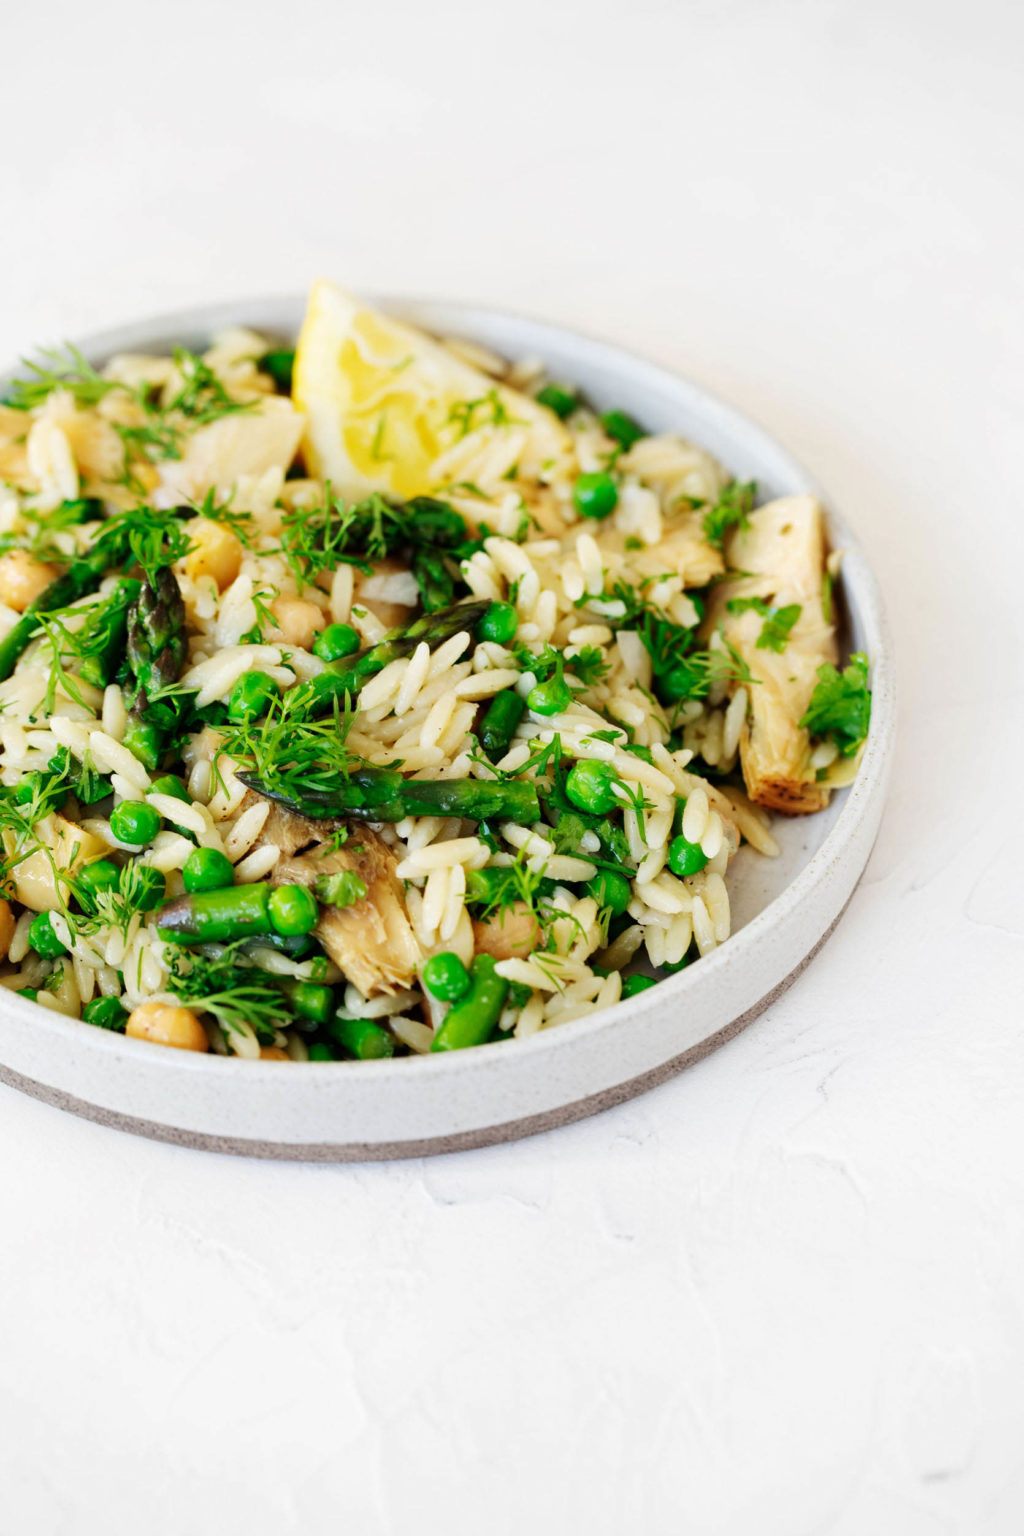 A rimmed, round white plate has been filled with an orzo pasta salad that's packed with vegetables and herbs. It rests on a white surface.